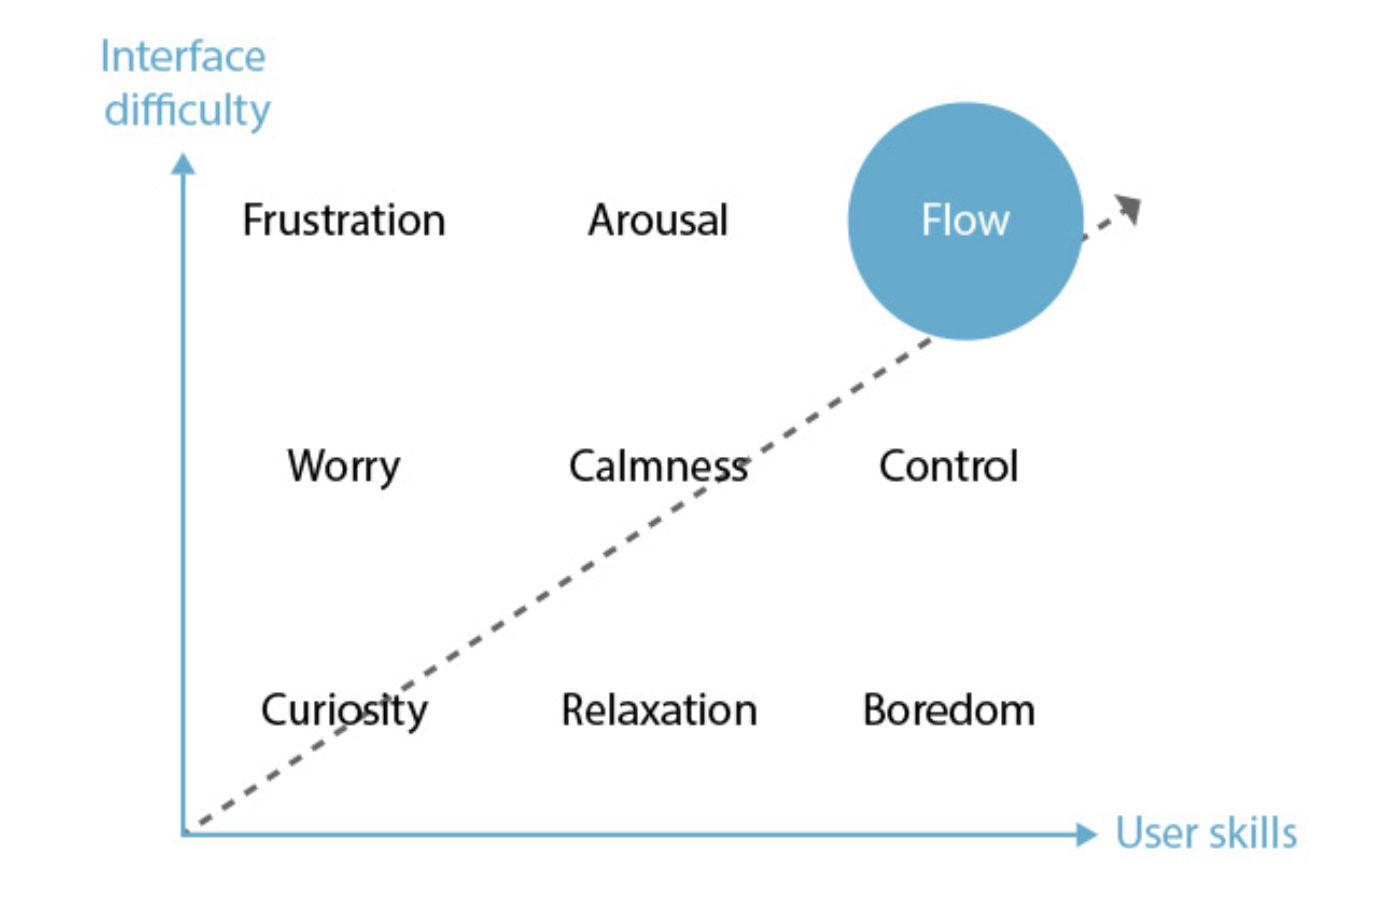 Interface difficulty/User skills graphic